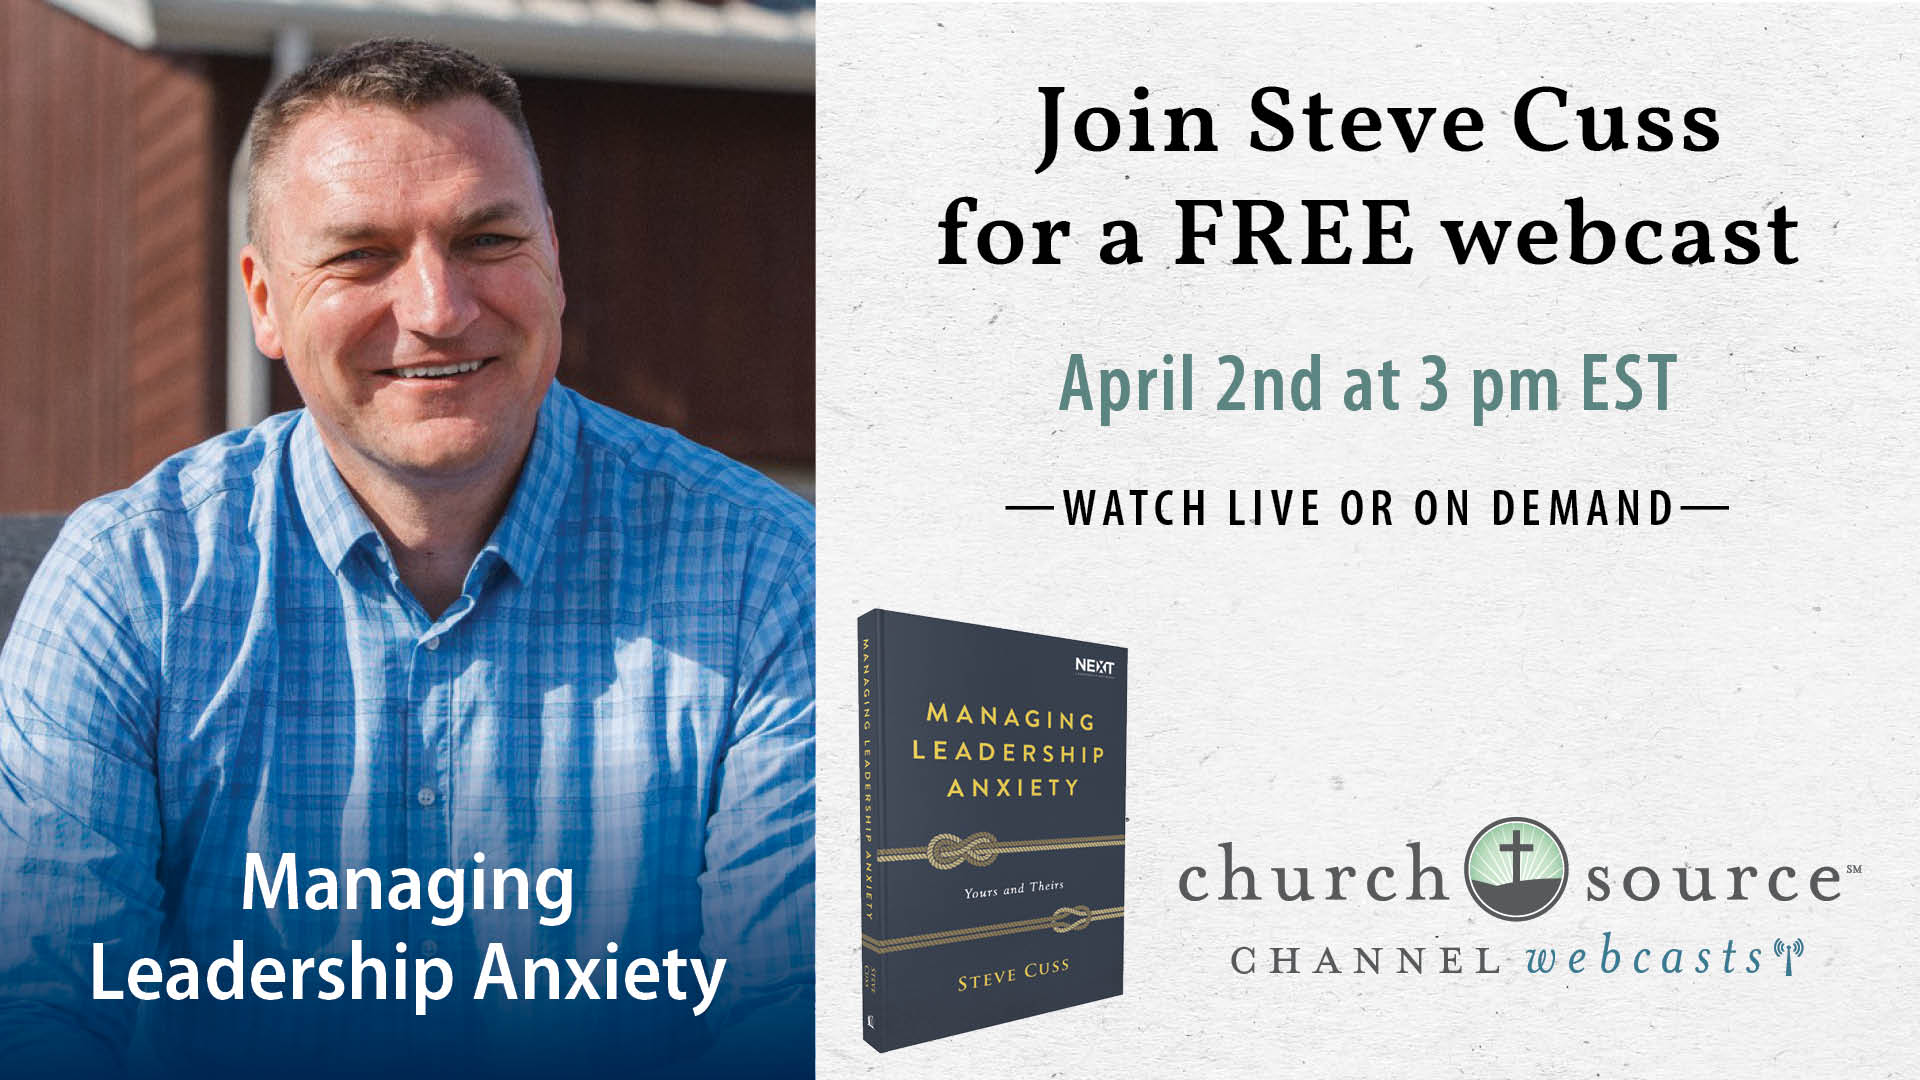 Managing Leadership Anxiety - Webcast with Steve Cuss